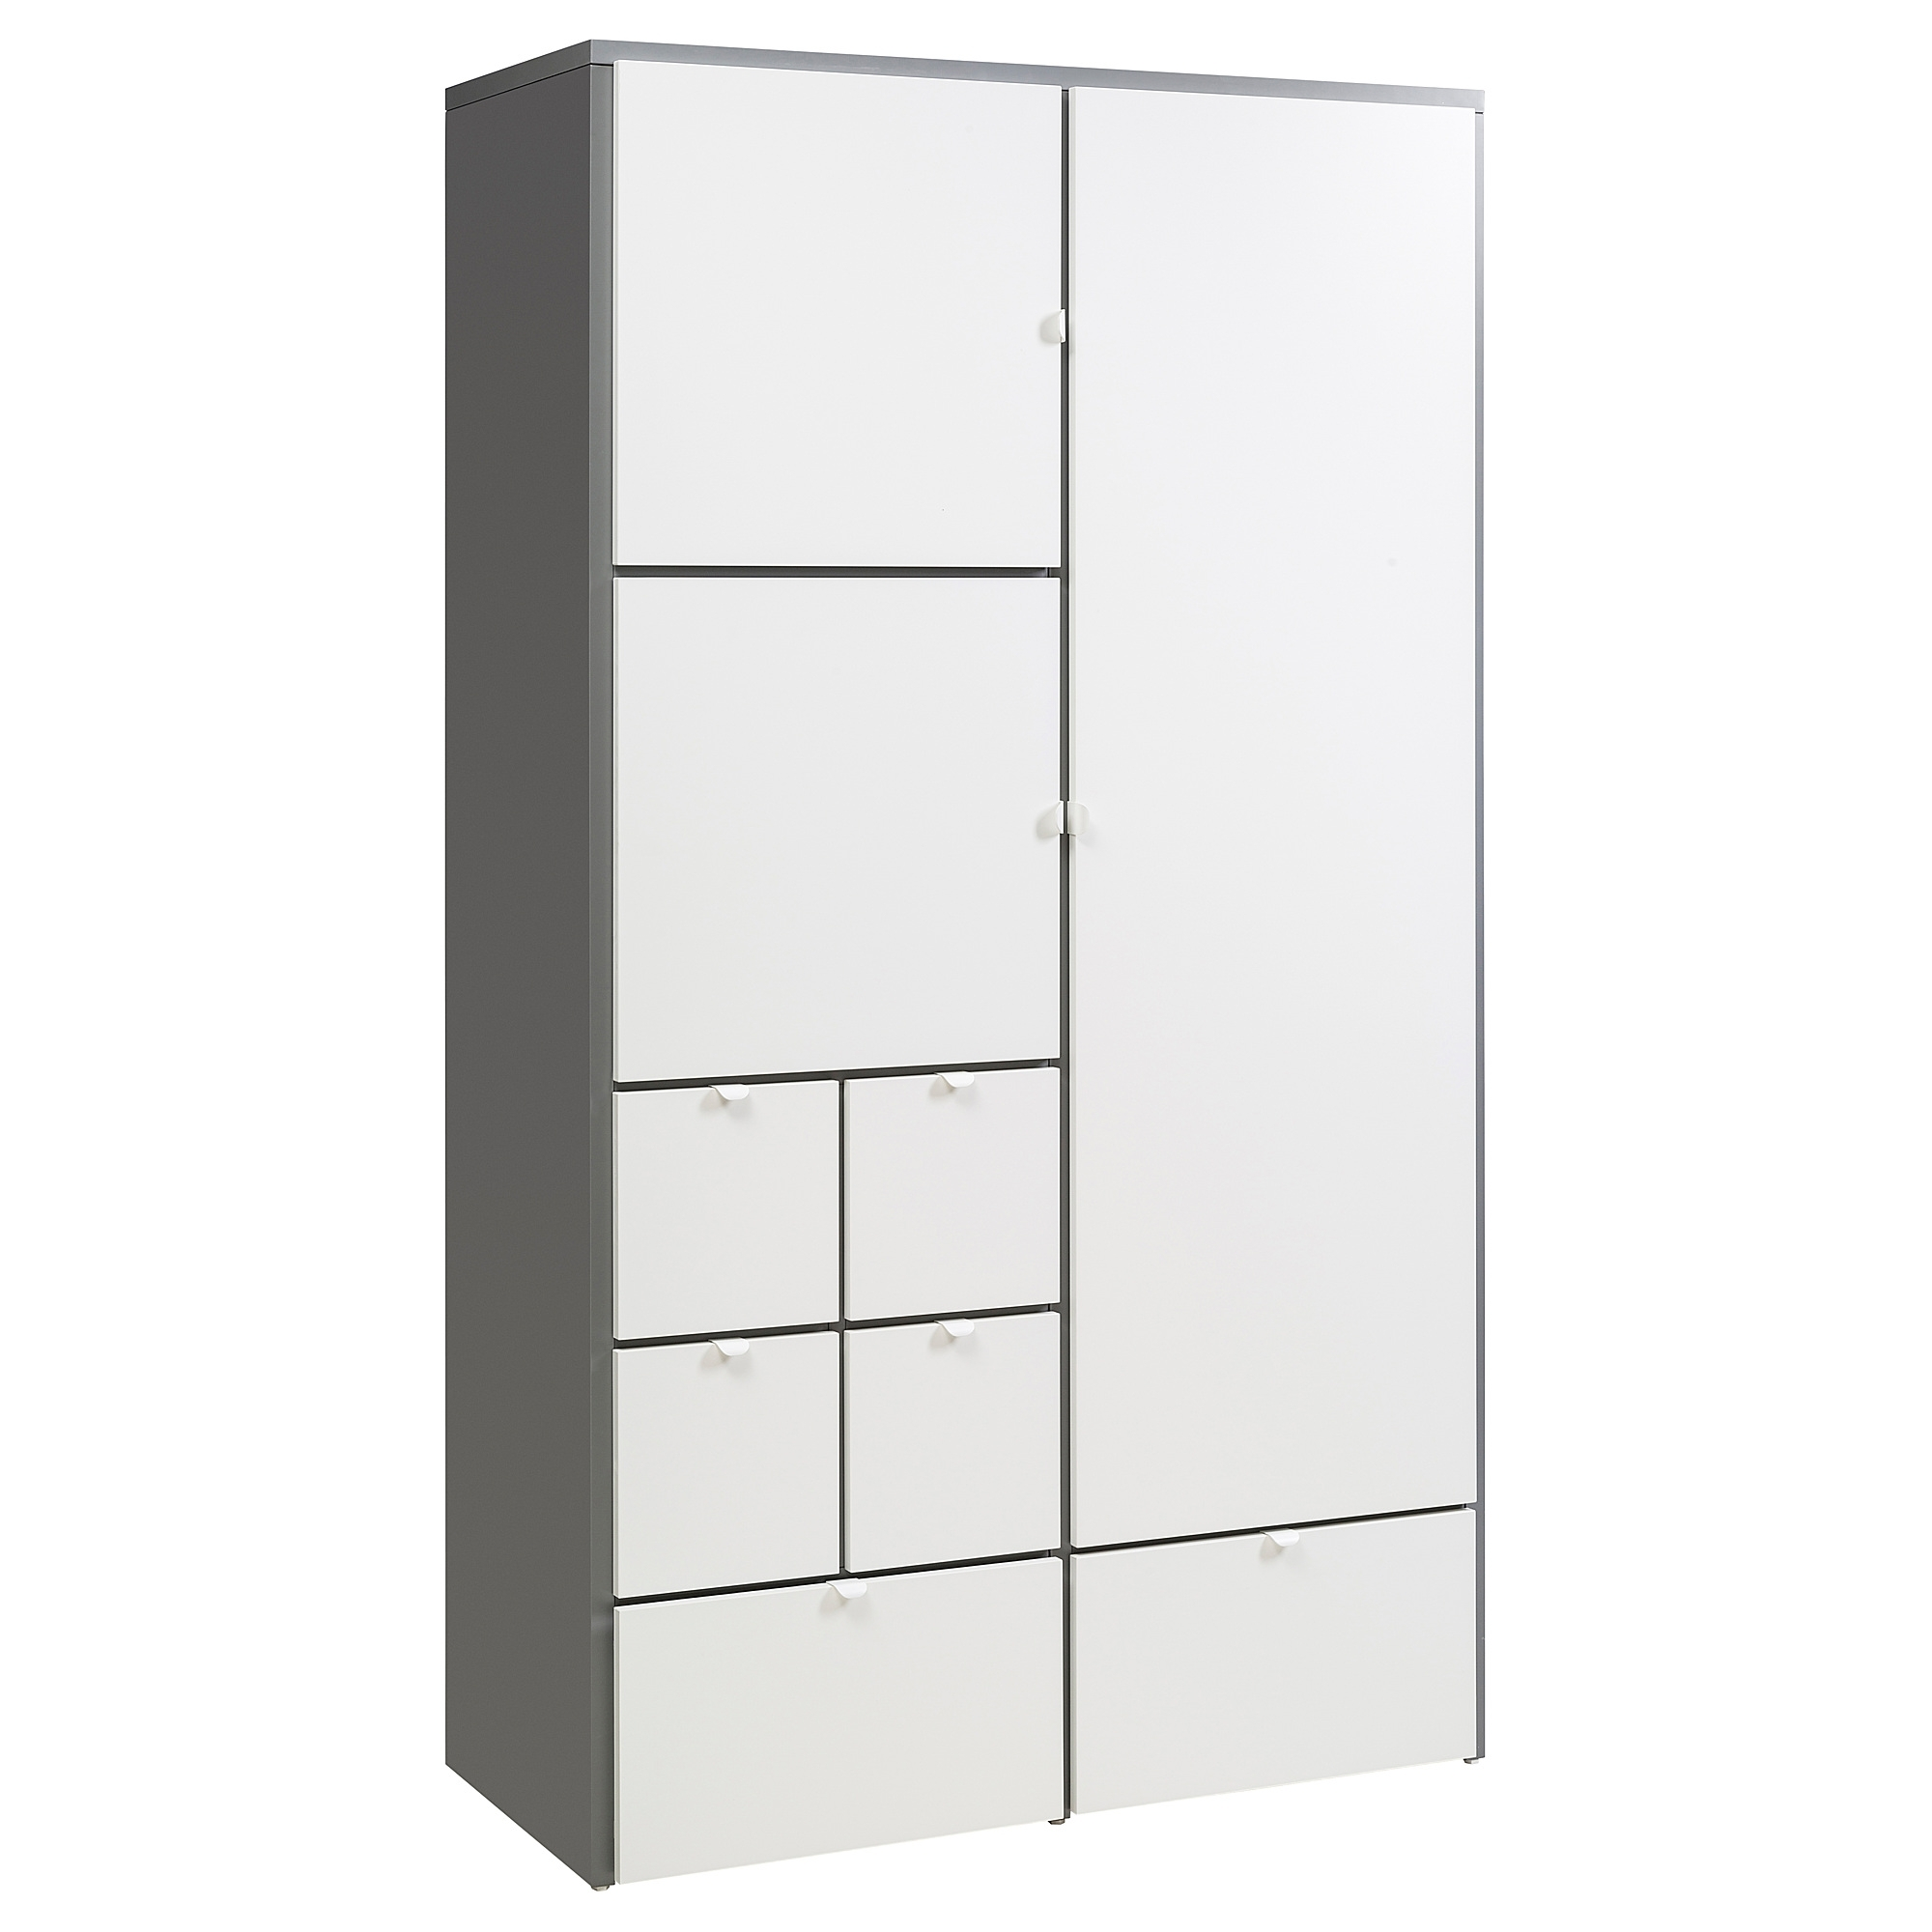 White Wardrobes With Drawers Regarding Most Recently Released Visthus Wardrobe Grey/white 122X59X216 Cm – Ikea (View 15 of 15)